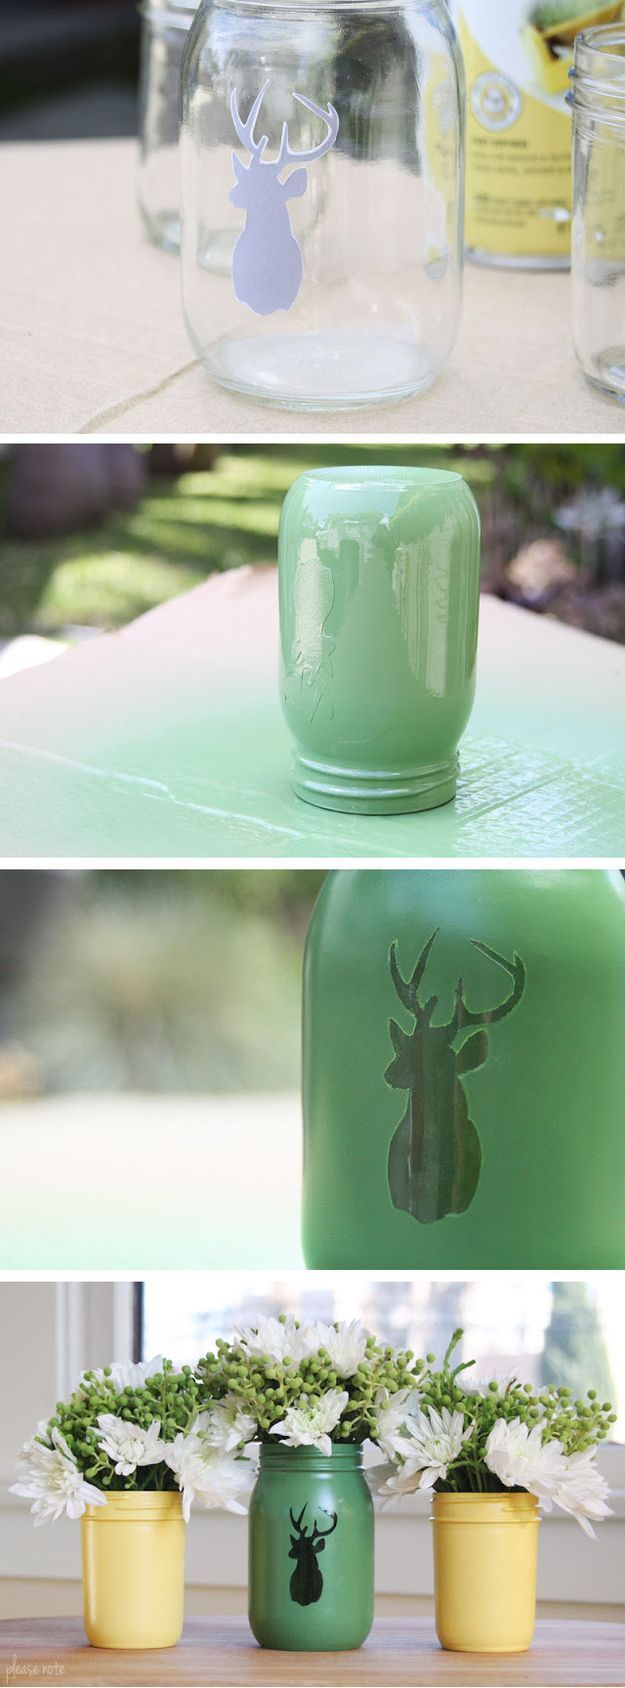 Stenciled Jar Vase | 39 DIY Christmas Gifts You'd Actually Want To Receive: